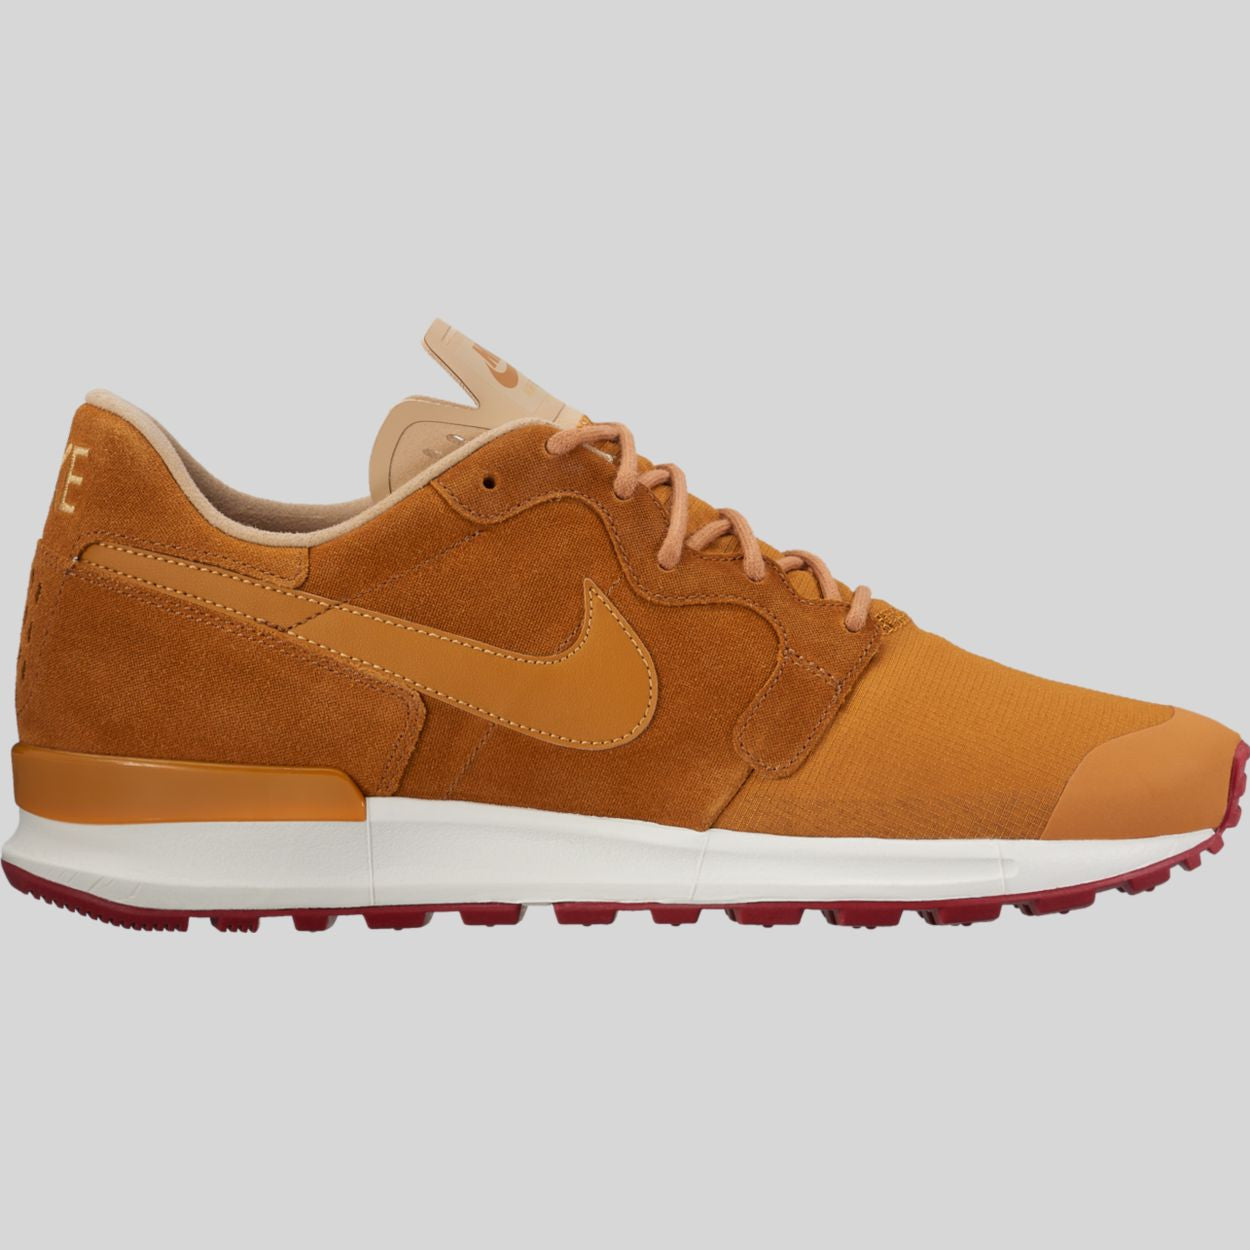 wholesale dealer 7556e df3fa Nike Air Berwuda PRM Desert Ochre Linen (844978-701)